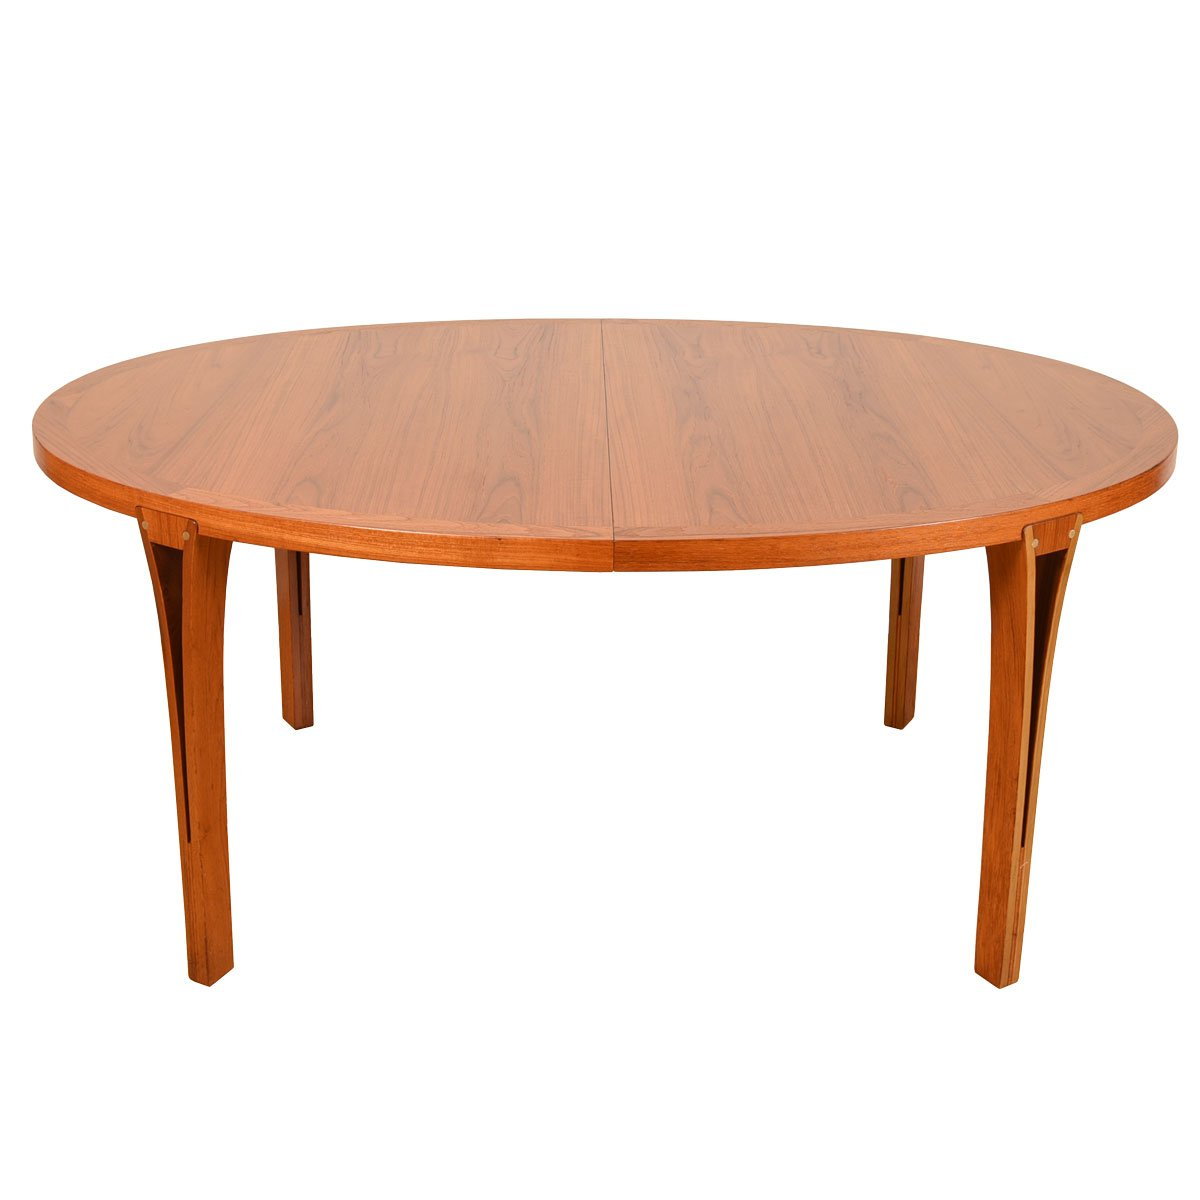 Danish Modern Oval Teak Dining Table